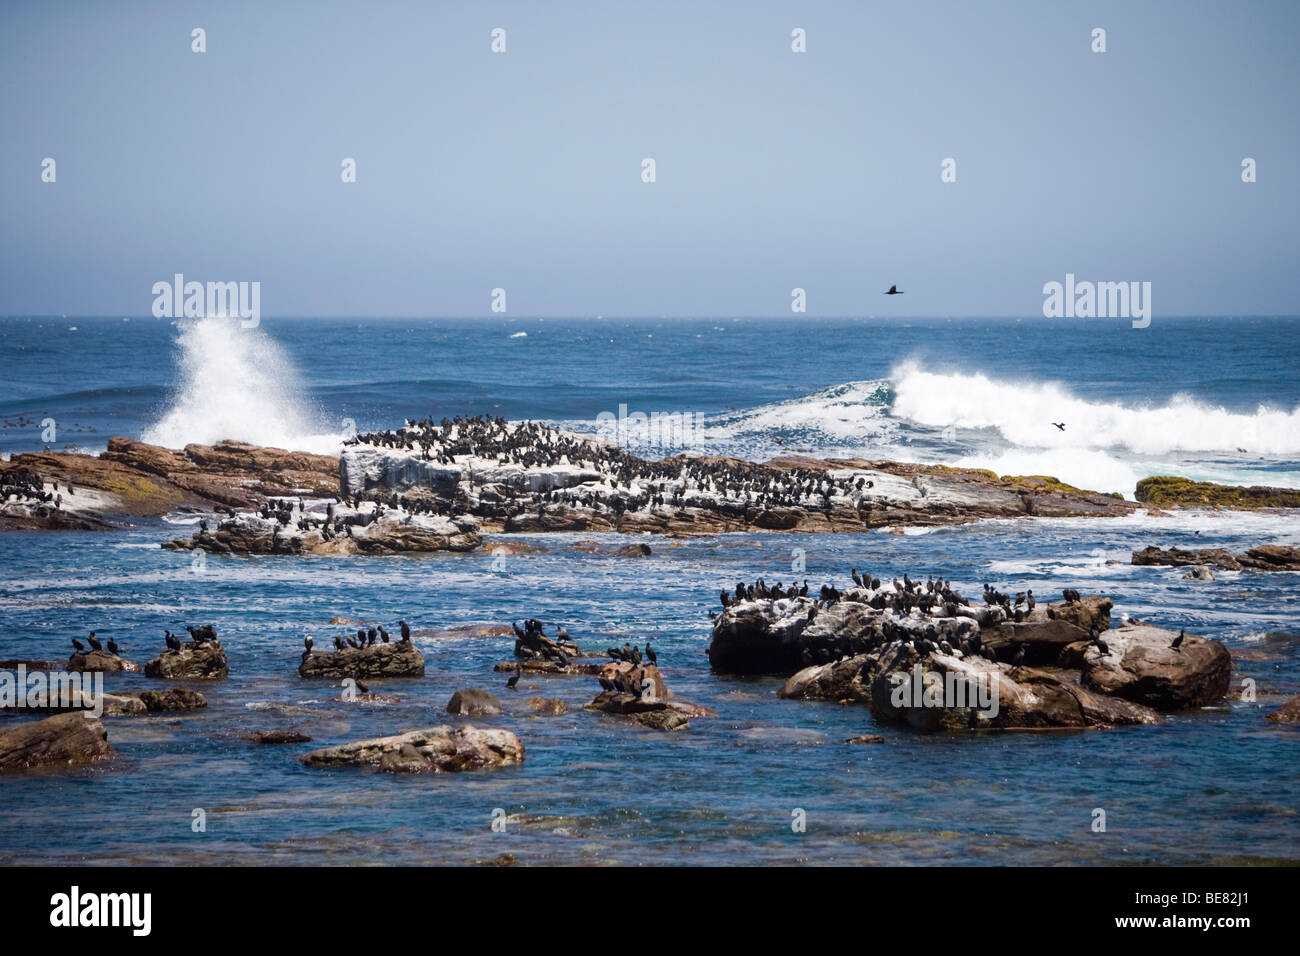 Cormorants on rocks at Cape of Good Hope, Cape Peninsula, Western Cape, South Africa - Stock Image